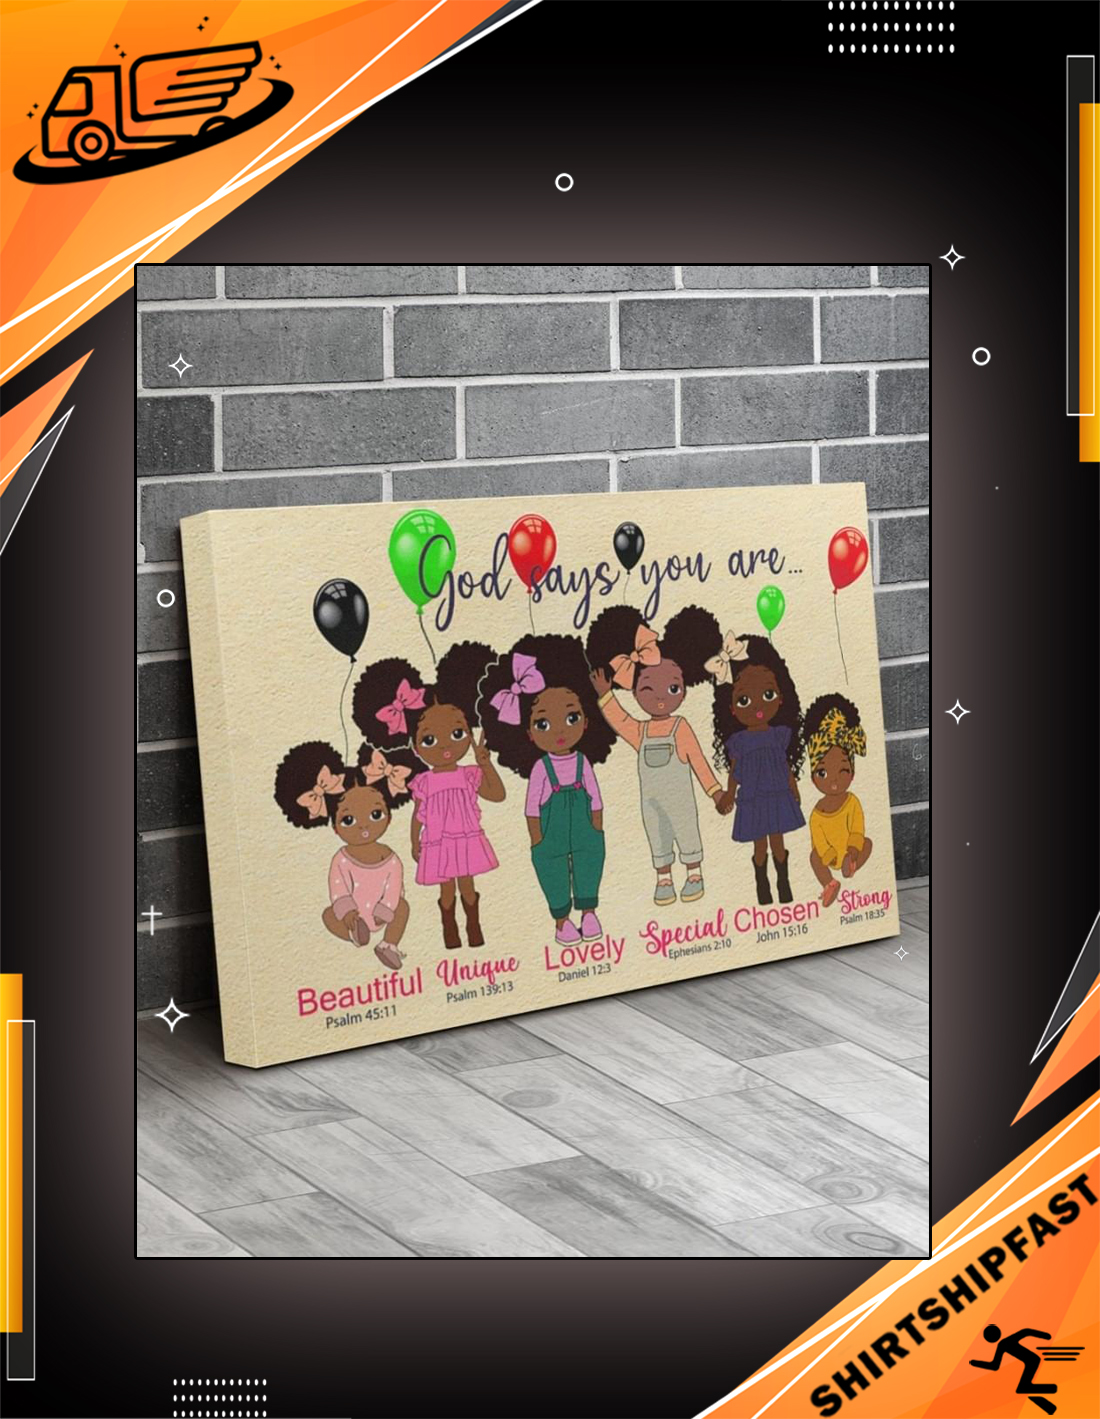 Black girl god says you are canvas prints - Picture 2